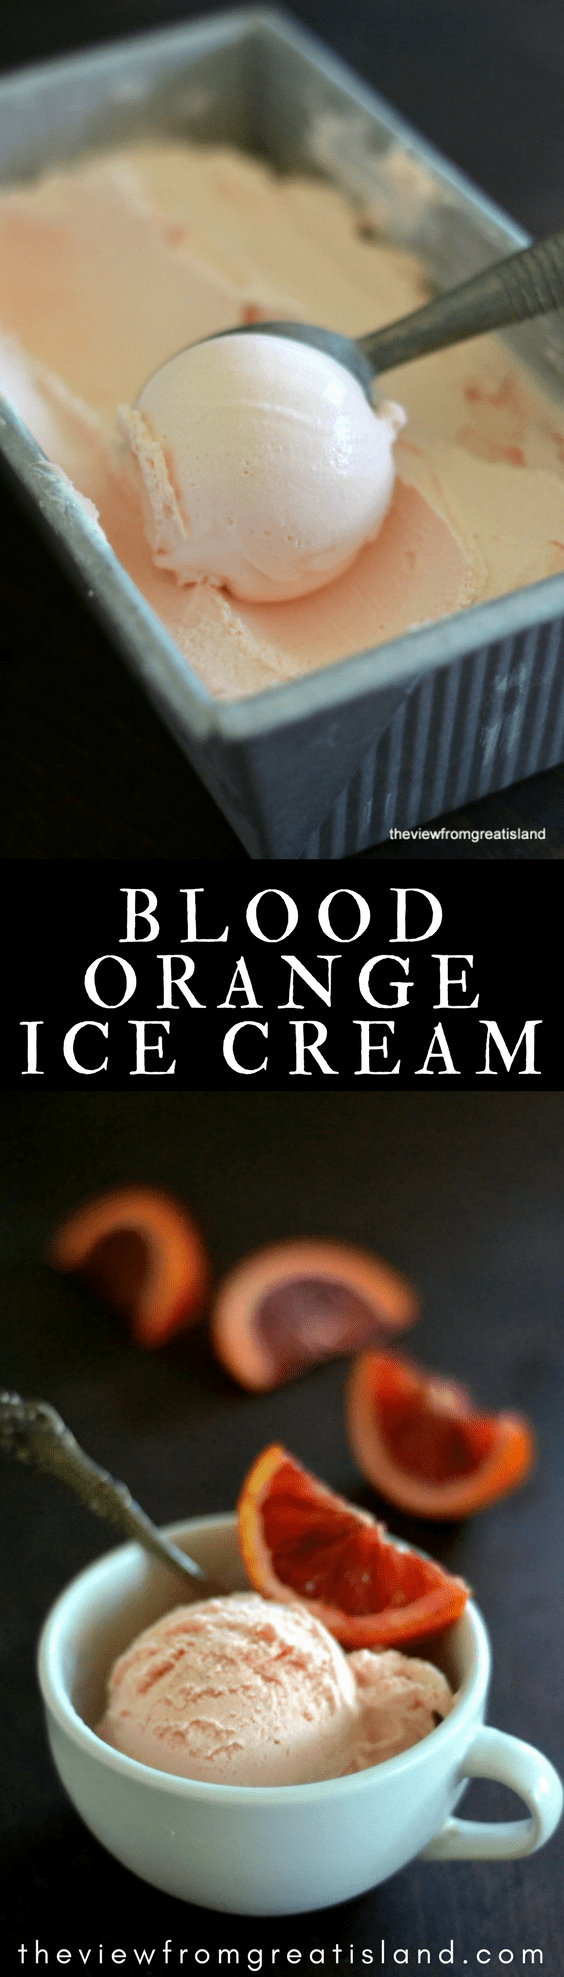 Blood Orange Ice Cream ~ take full advantage of blood orange season with this gorgeous homemade ice cream, it's bursting with that unmistakable berry/citrus flavor that blood oranges are famous for! #ICECREAM #HOMEMADEICECREAM #CITRUS #BLOODORANGES #CITRUSICECREAM #ORANGEICECREAM #CREAMSICLE #WINTERFRUIT #DESSERT